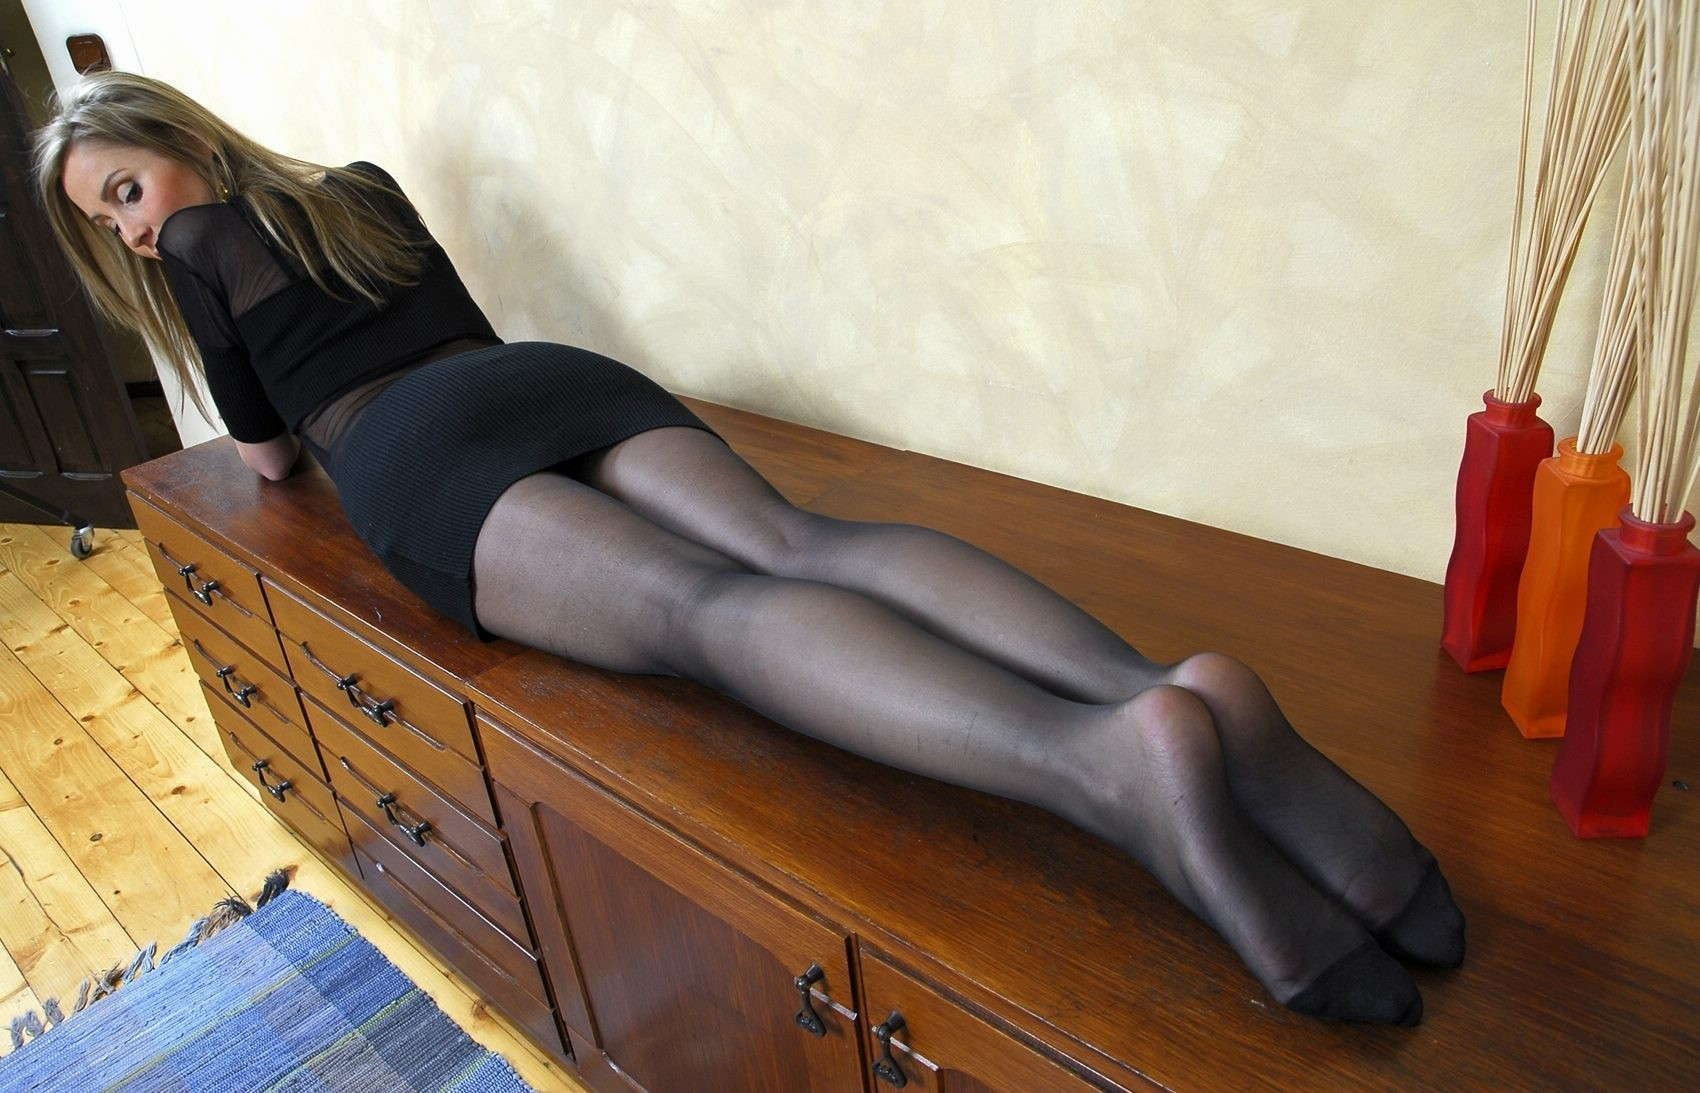 Skinny girls in tights nylons pantyhose, naked prepubescent little boys